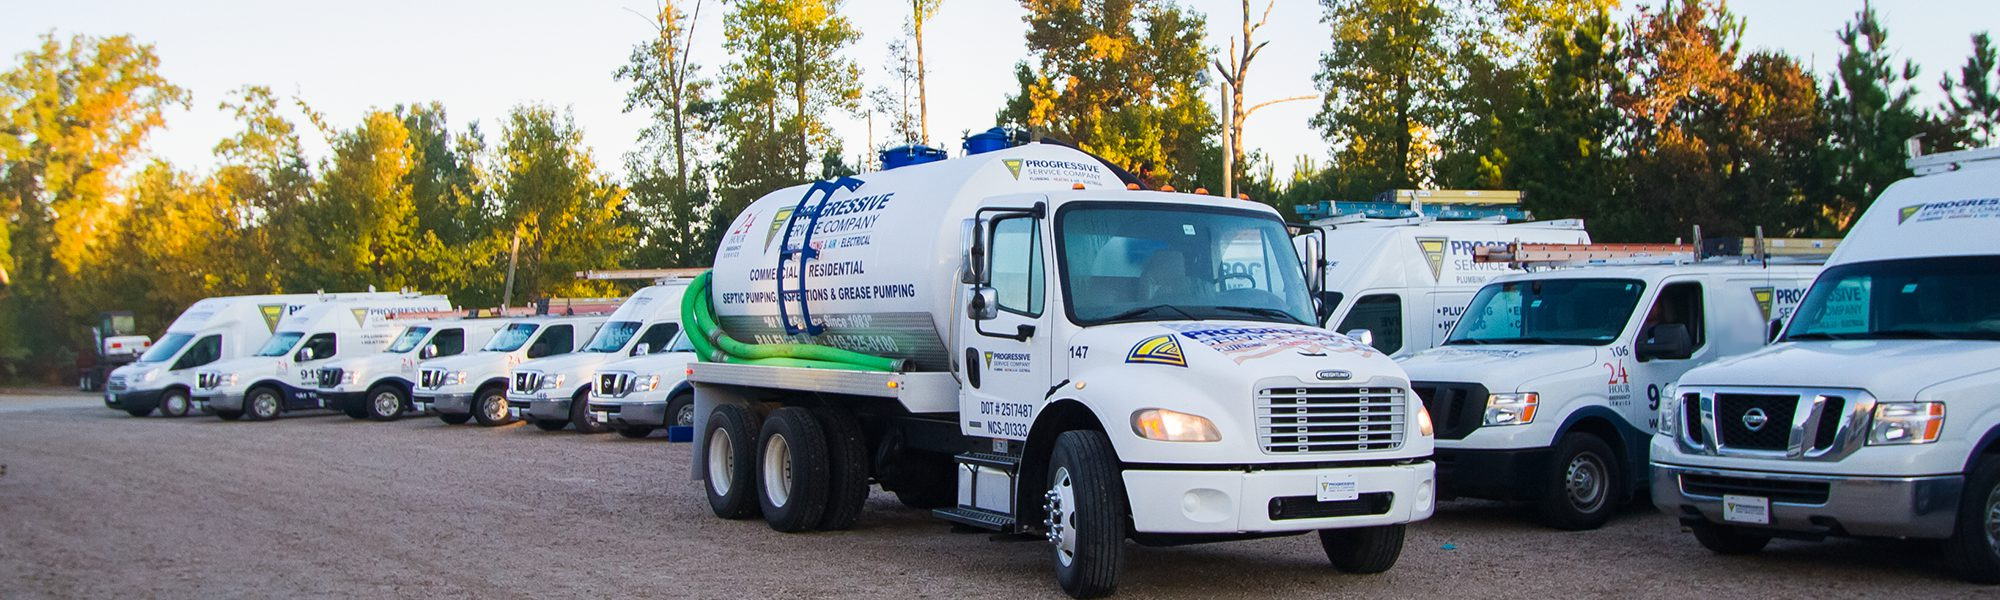 Raleigh Commercial Septic Services Pumping